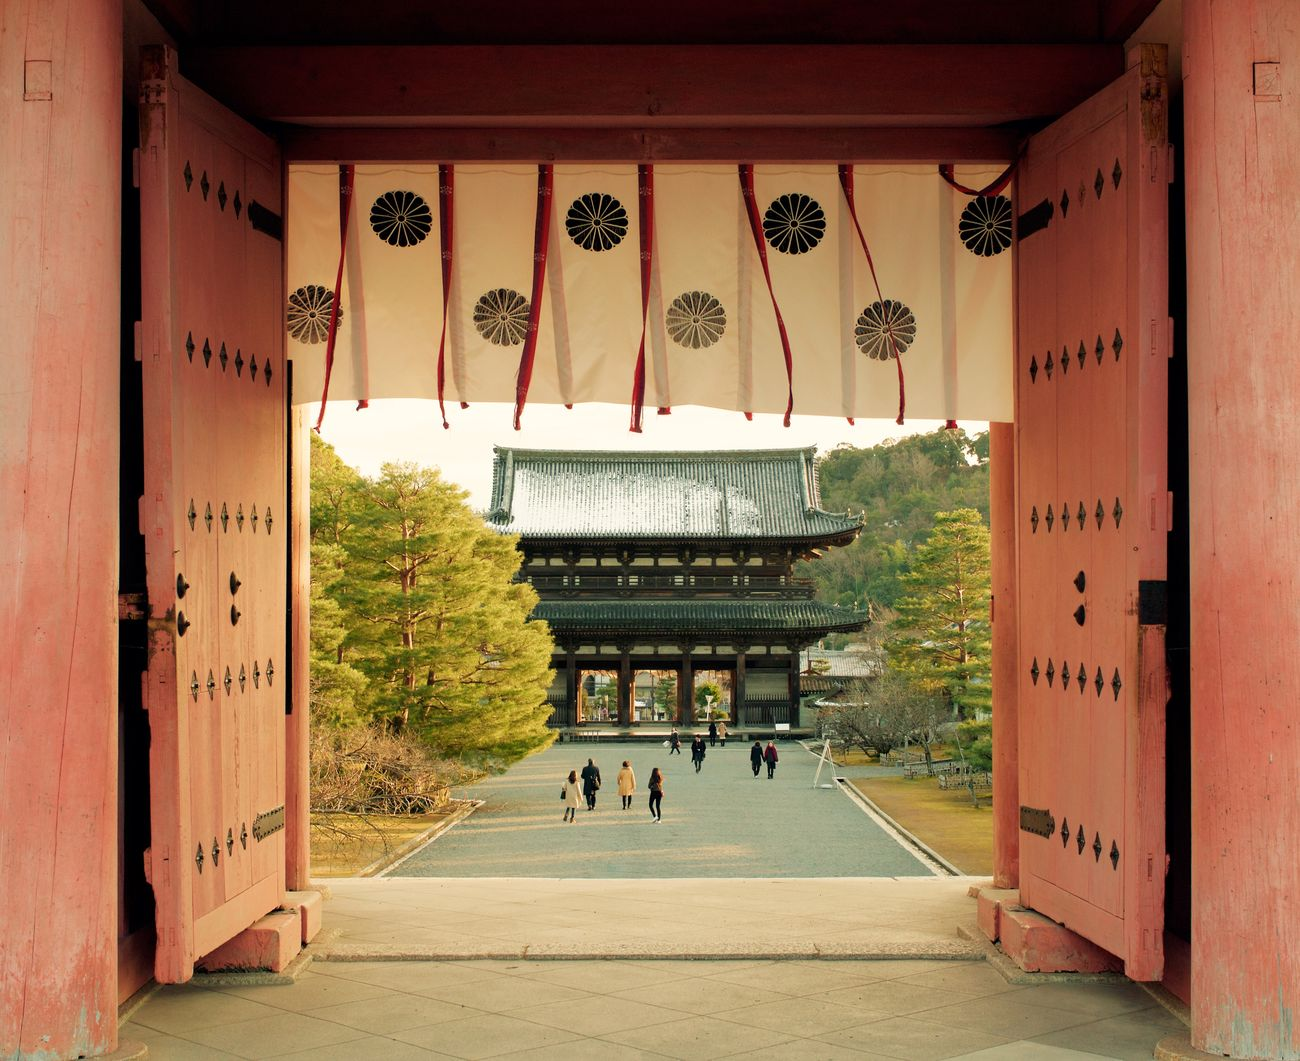 Architecture Built Structure Place Of Worship Building Exterior Travel Destinations Cultures Religion Day Non-western Script Spirituality Chinese Lantern Outdoors No People Japan Kyoto Ninnaji 仁和寺